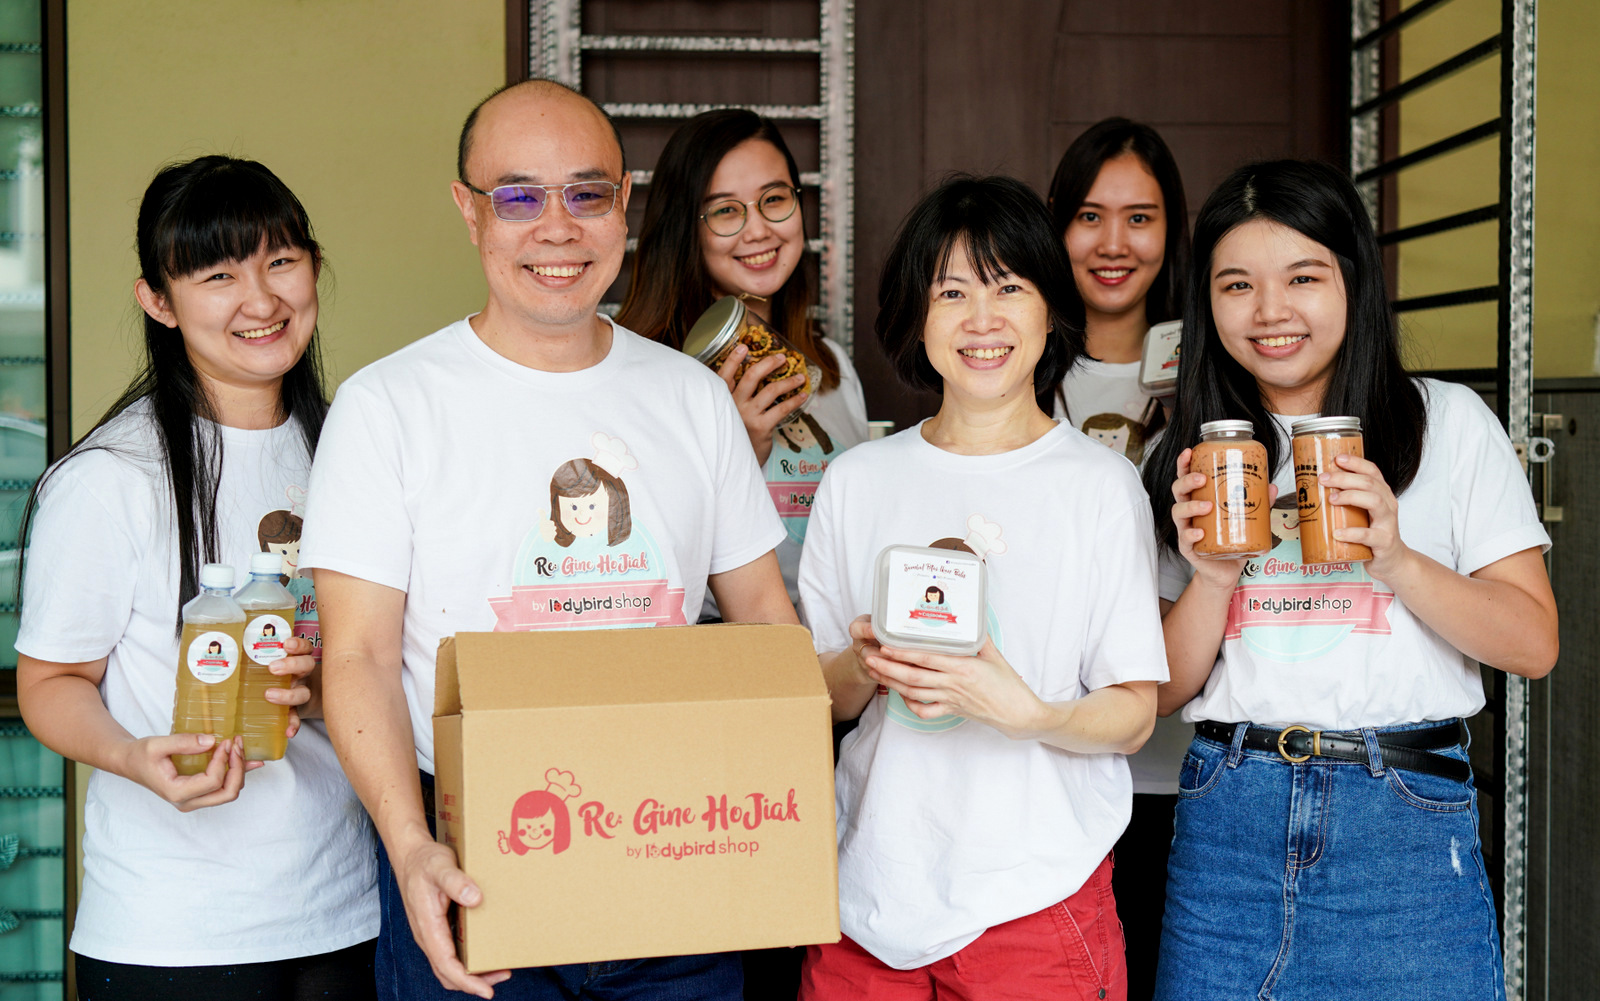 re: gine hojiak: a malaysian tour operator swaps sightseeing for sambal